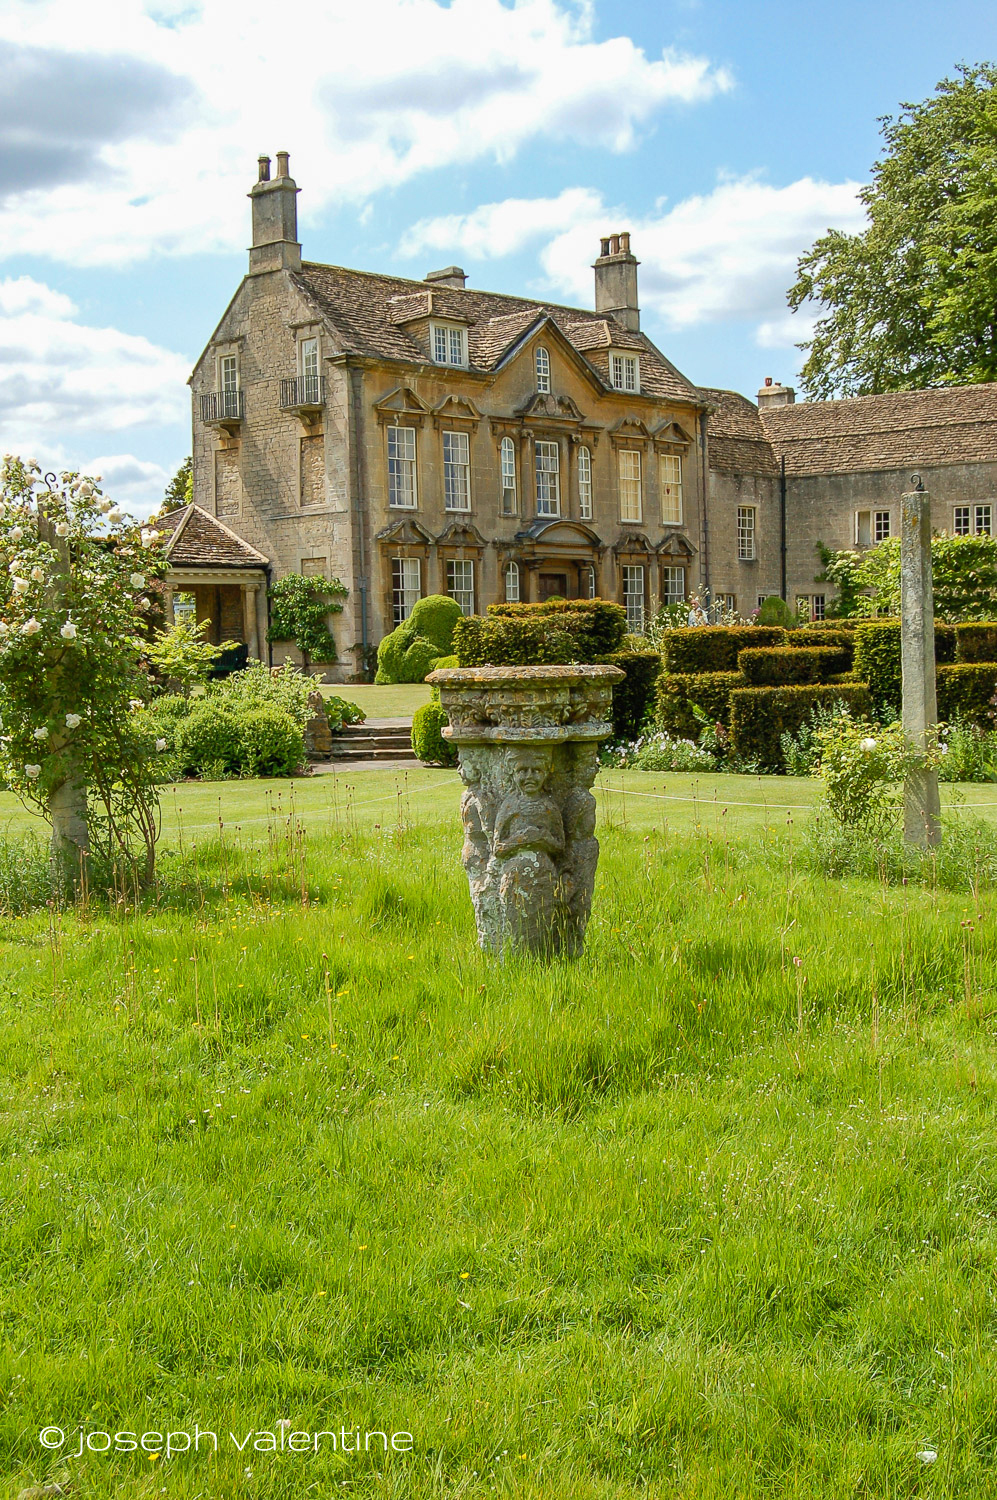 Sections of uncut grass alternate with mown turf in front of the manor house at The Courts in England.